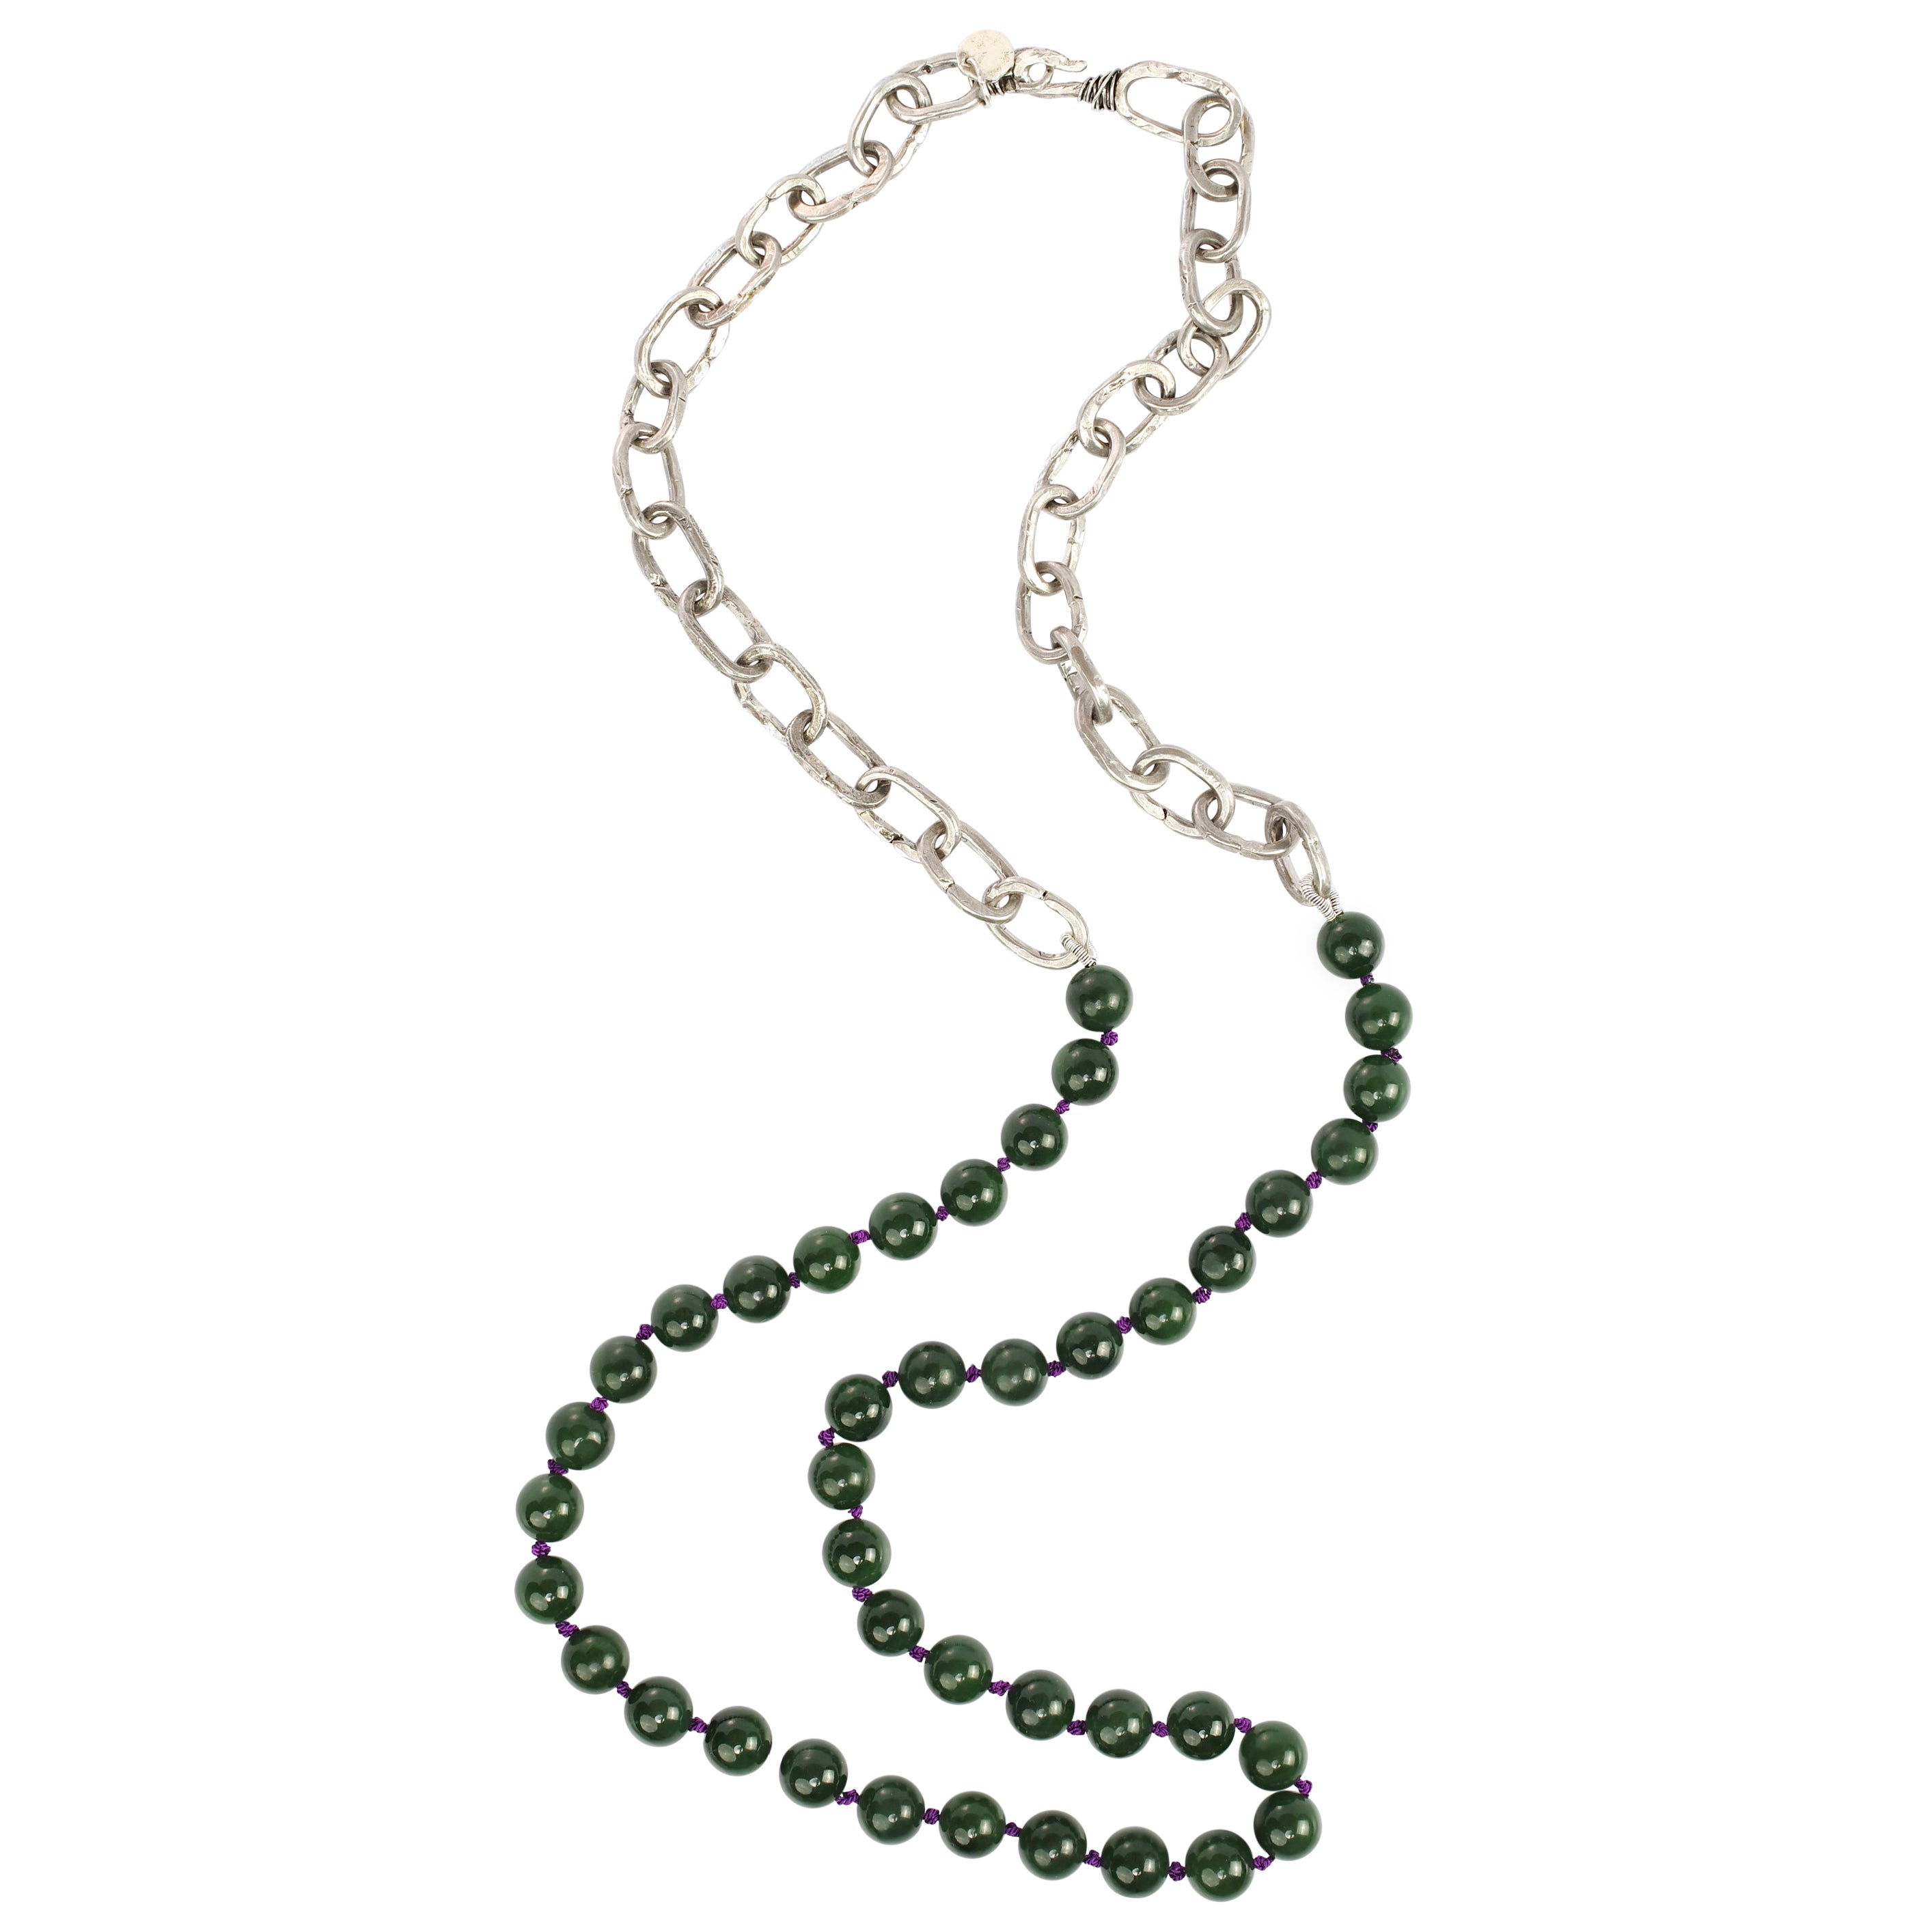 Jade and Chain Necklace Handmade by Augusten Burroughs